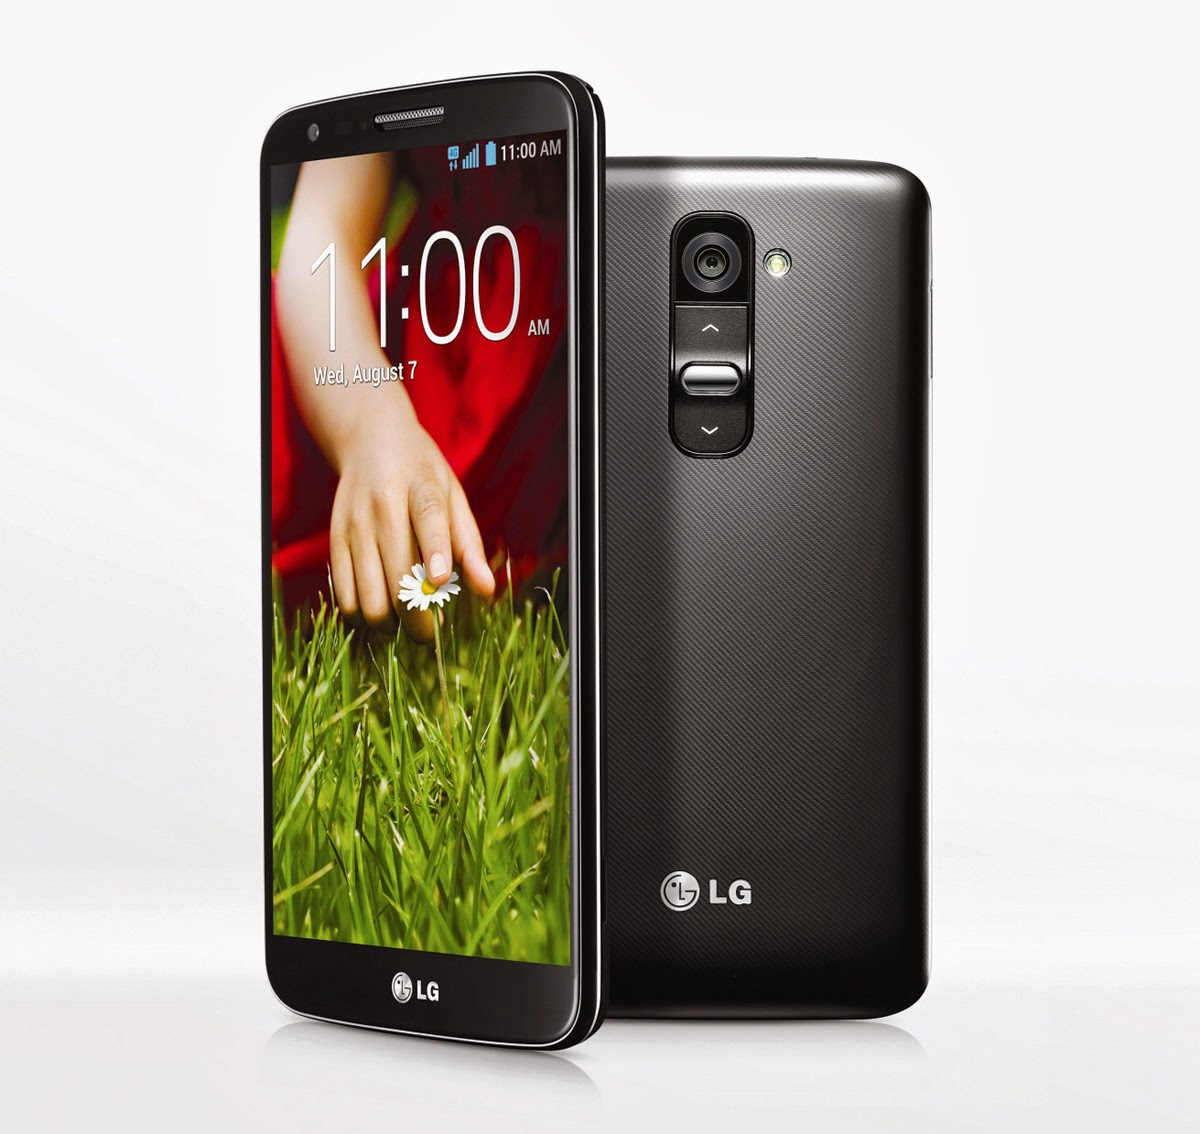 LG G2: complete reviews and specifications@technofia.com